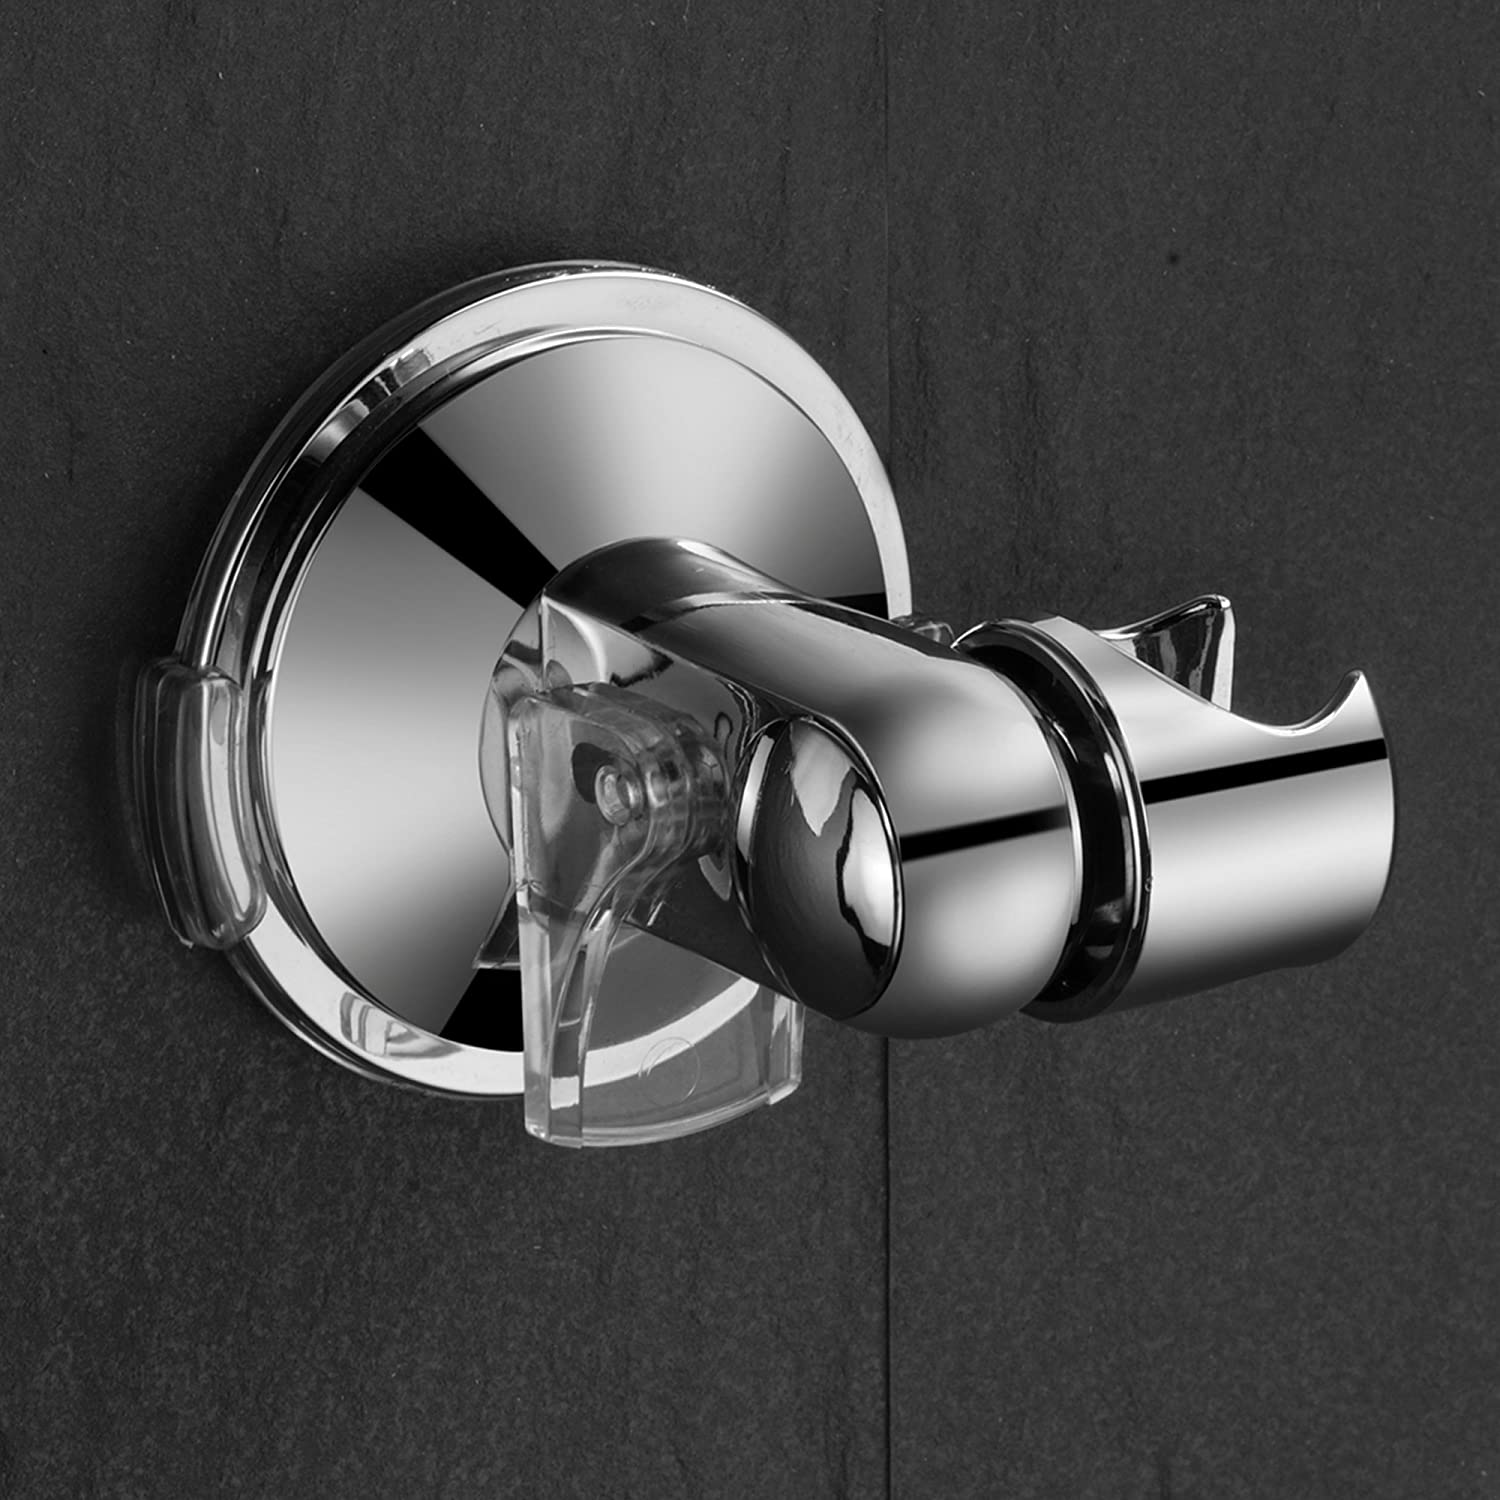 Patented Push-Lock provides Superior Suction/Power HotelSpa Universal/Angle-Adjustable/Hand/Shower/Wall/Bracket/for/Easy/Reach//Perfect/Angle/Fits ANY/SHOWER Self-Adhesive/Slide-in Holder/&nb